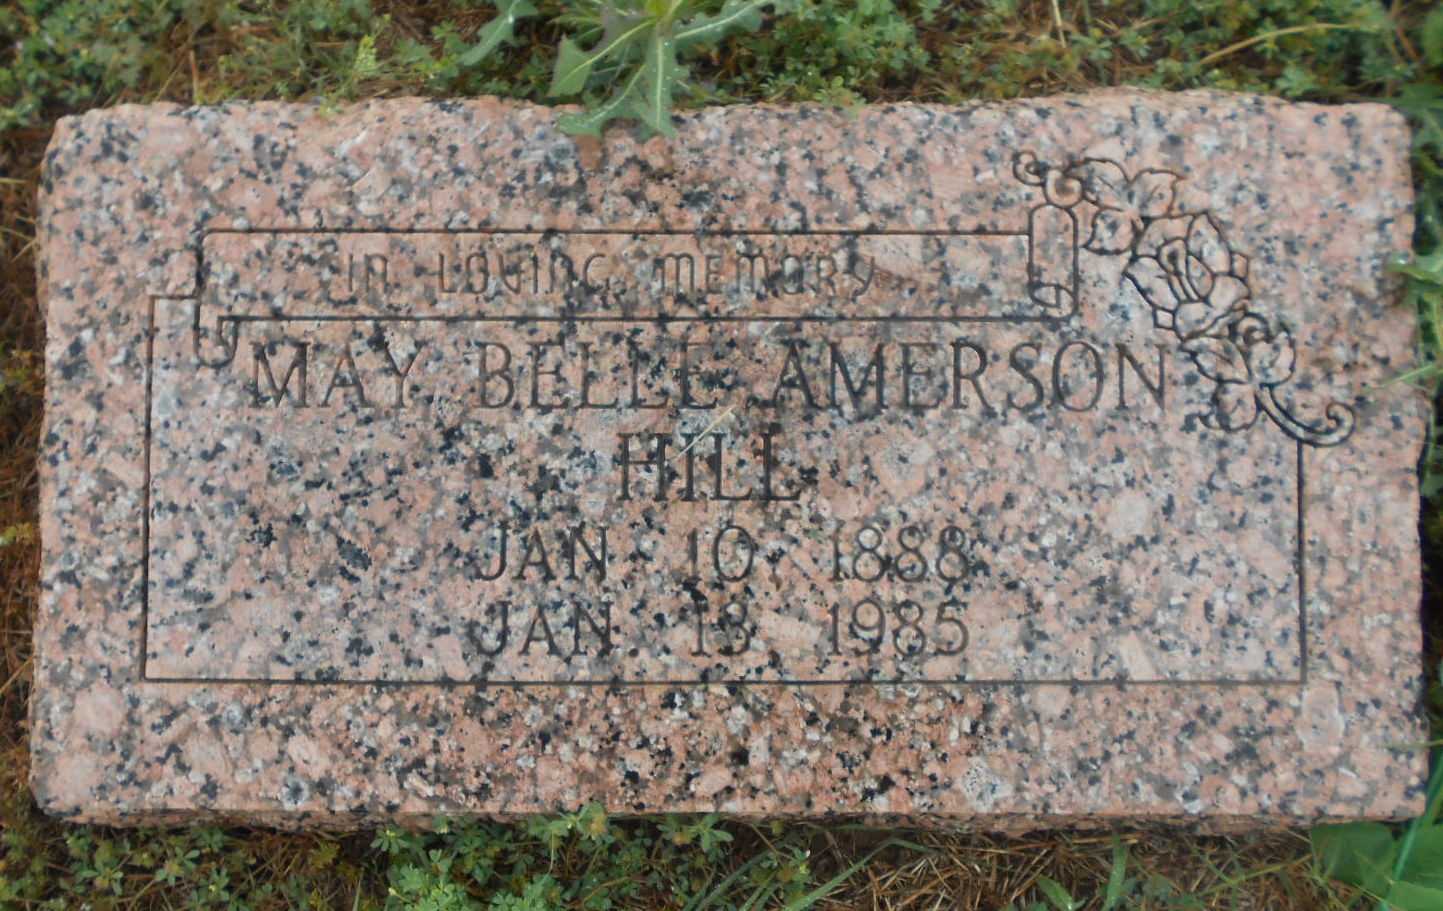 May Belle Amerson